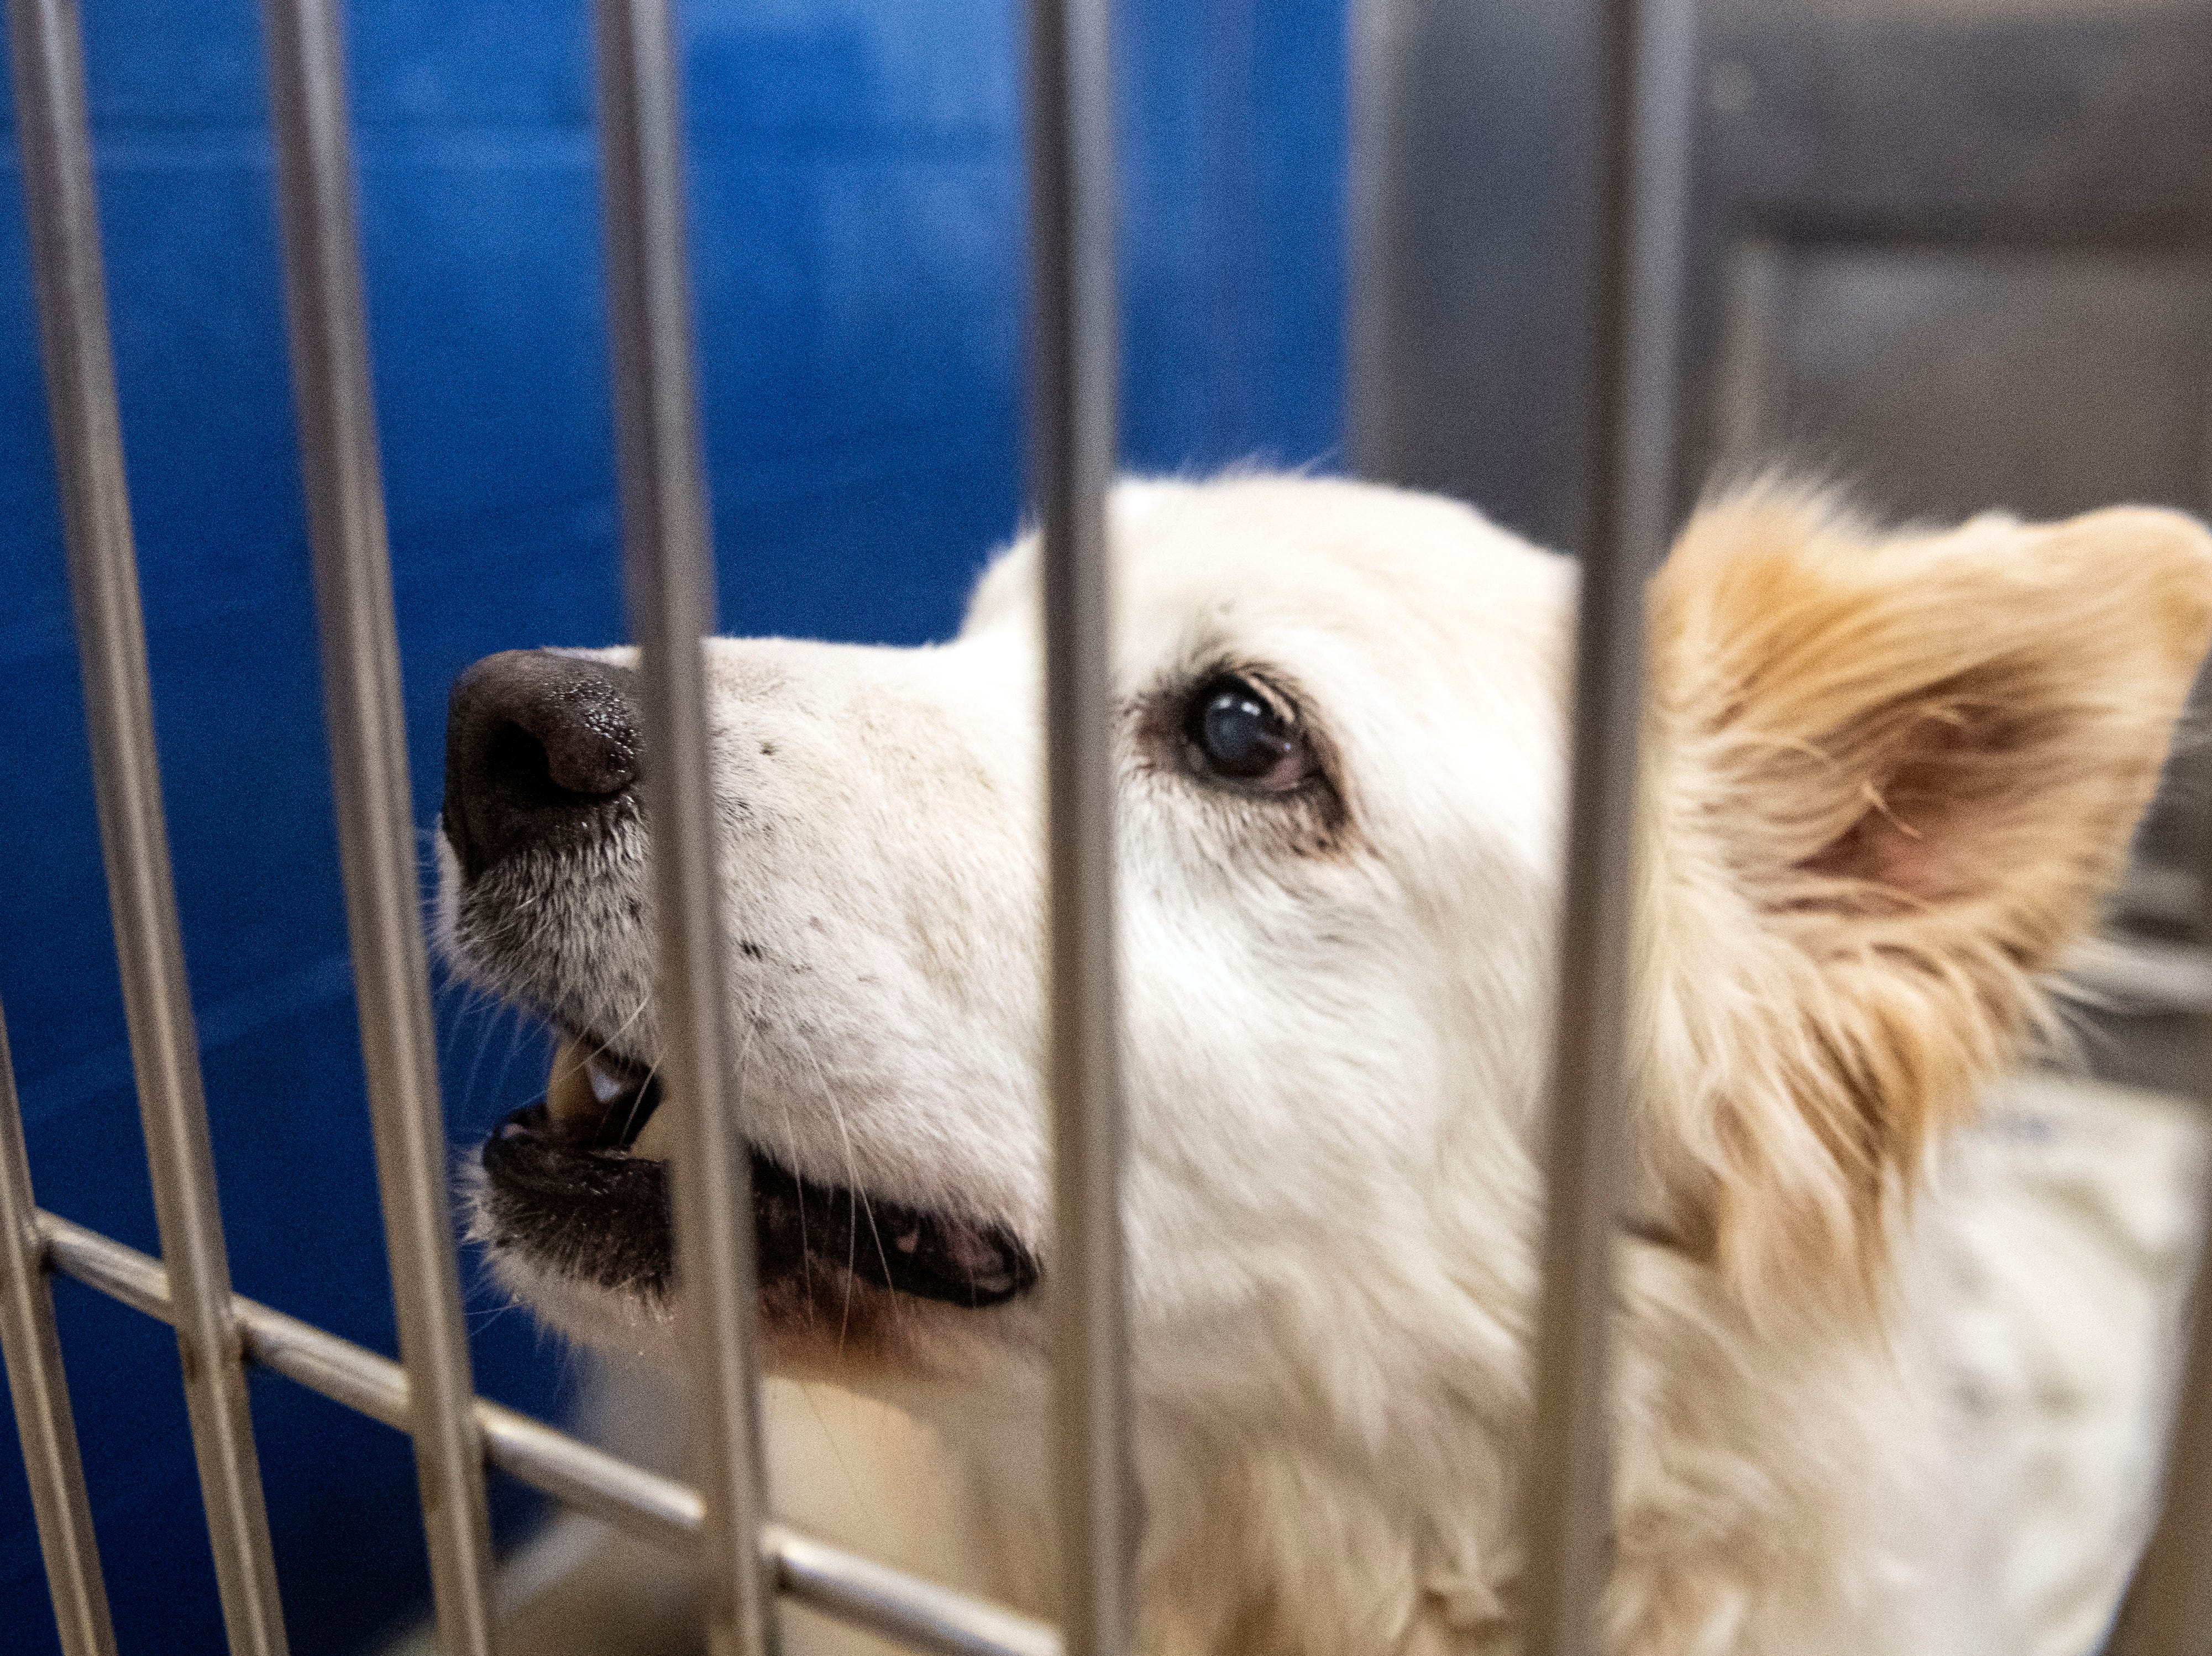 PK, an older (over 12 years) mixed spitz, at the York County SPCA, Thursday, Feb. 7, 2019. He was brought into the shelter due to both of his owners becoming ill.